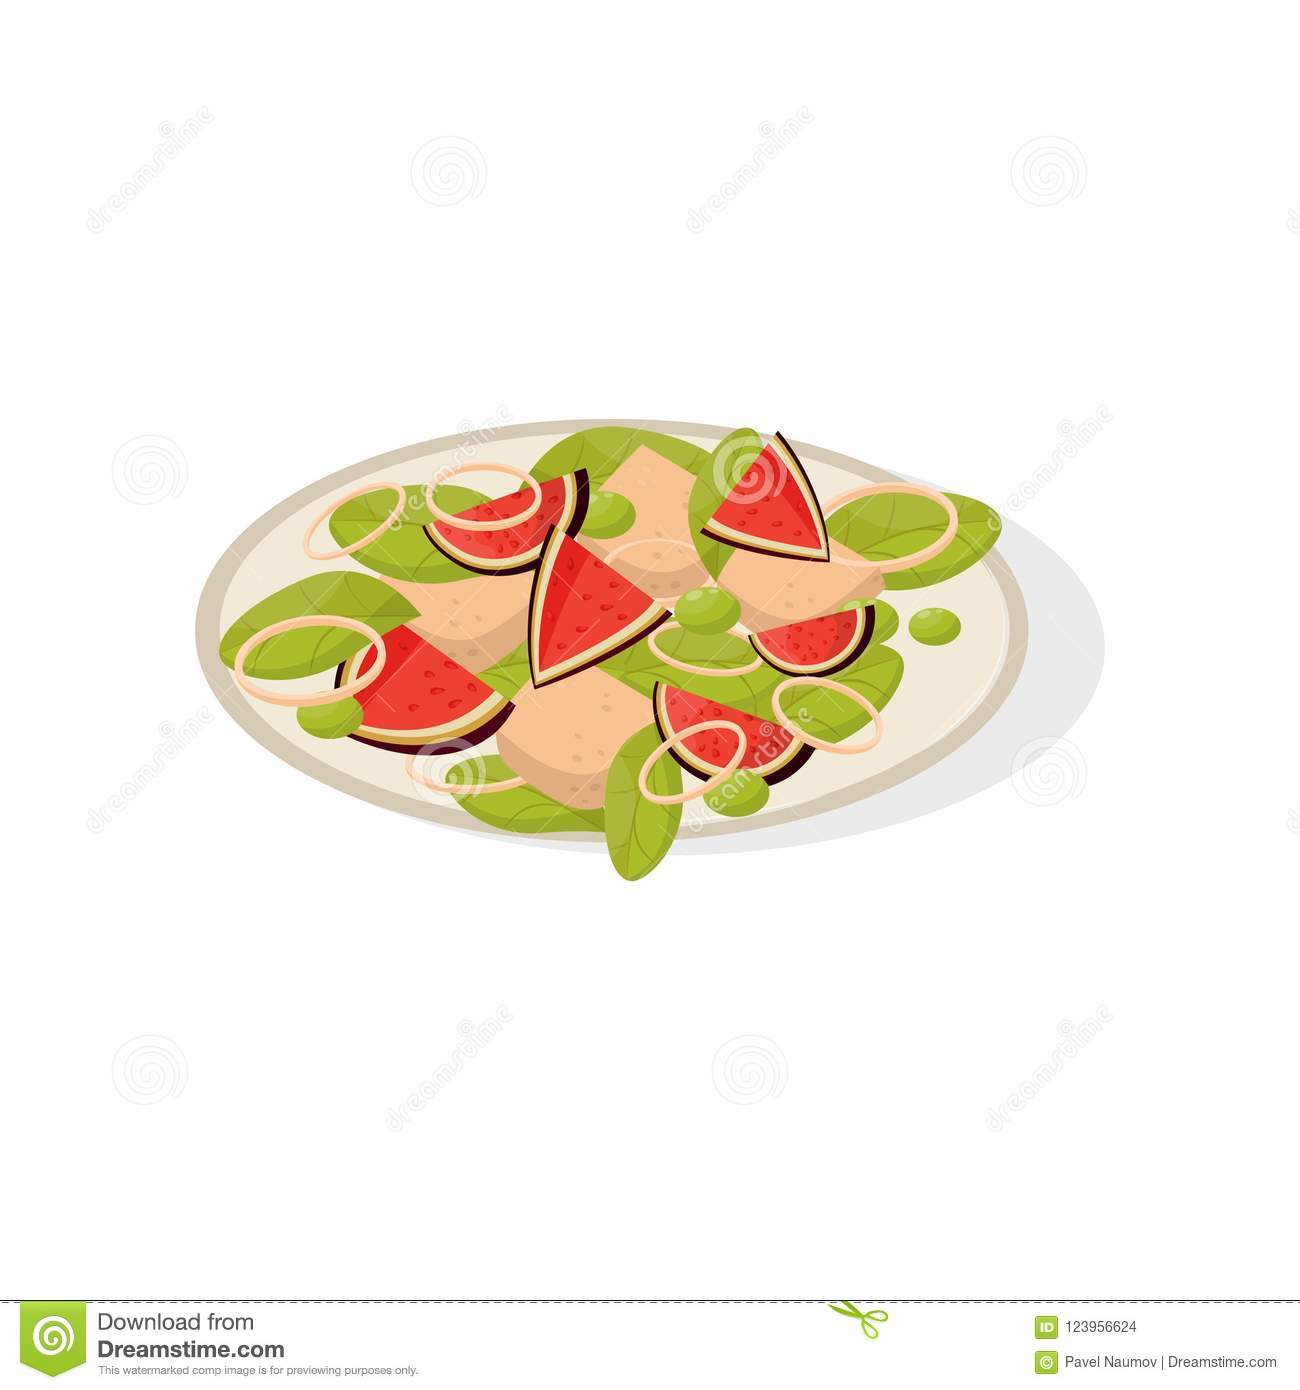 Salad with fig fruits on a plate vector Illustration on a white background